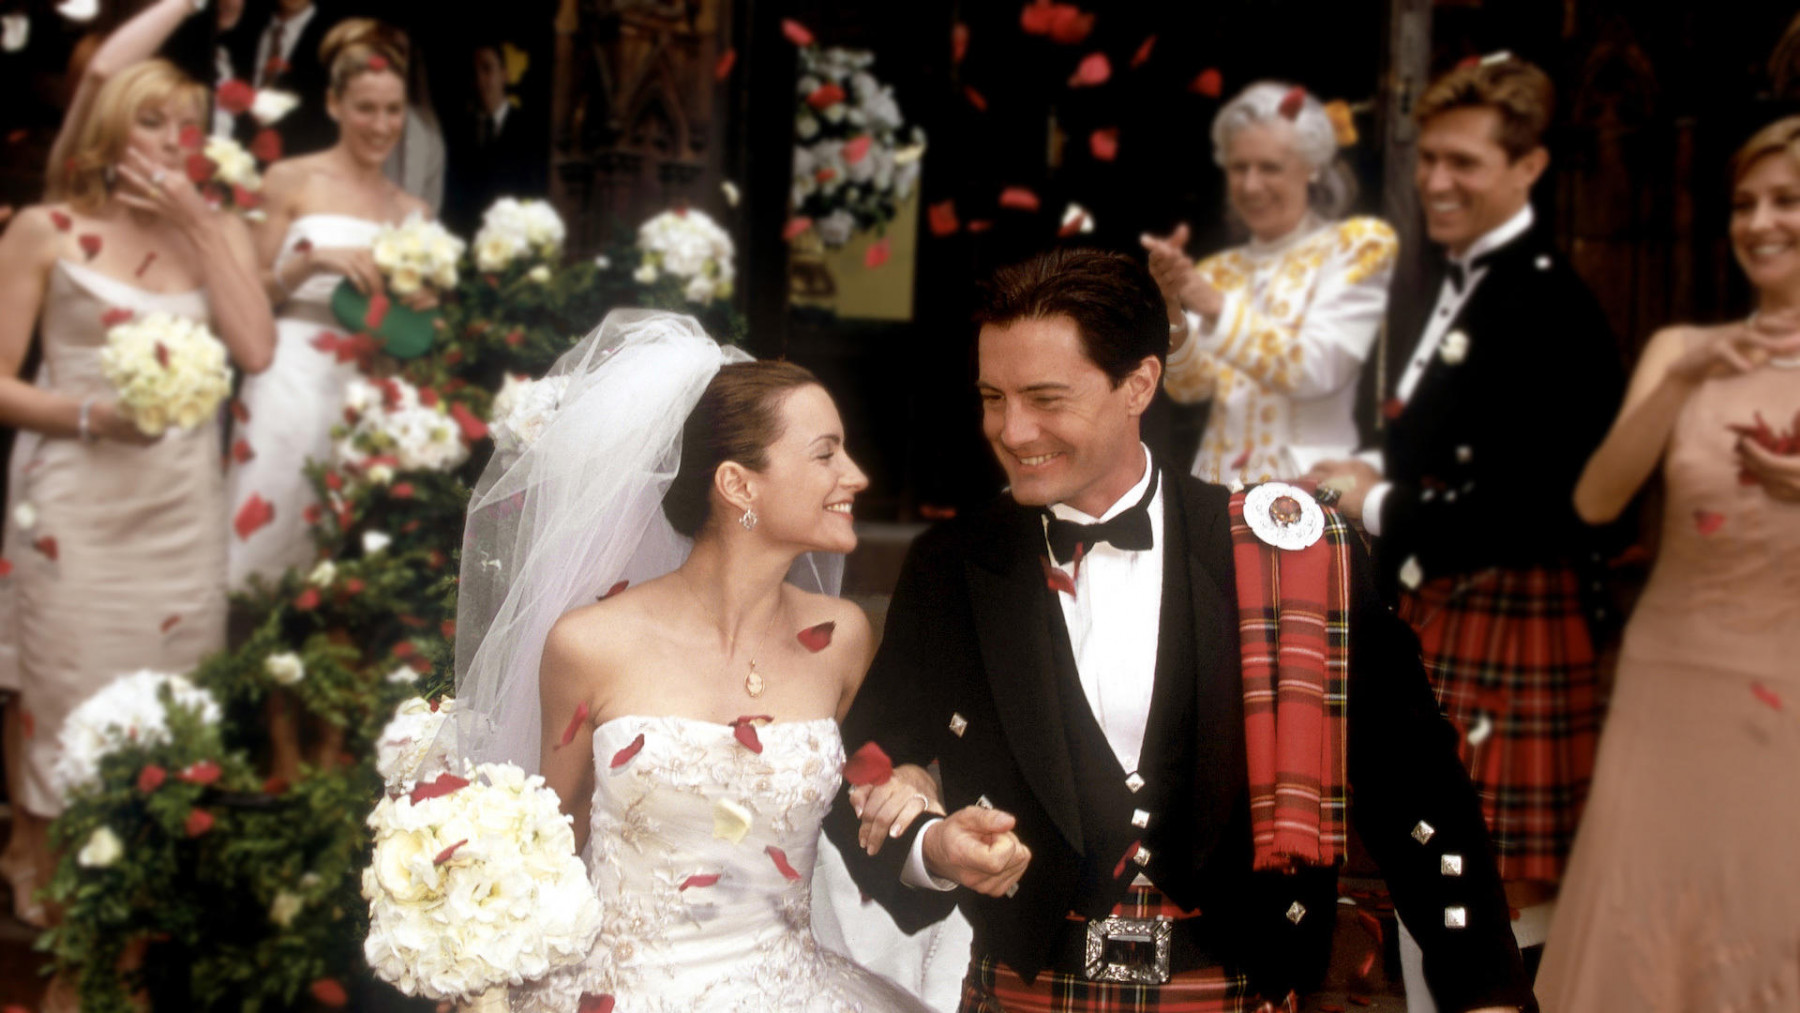 Wedding dresses from your favorite TV series